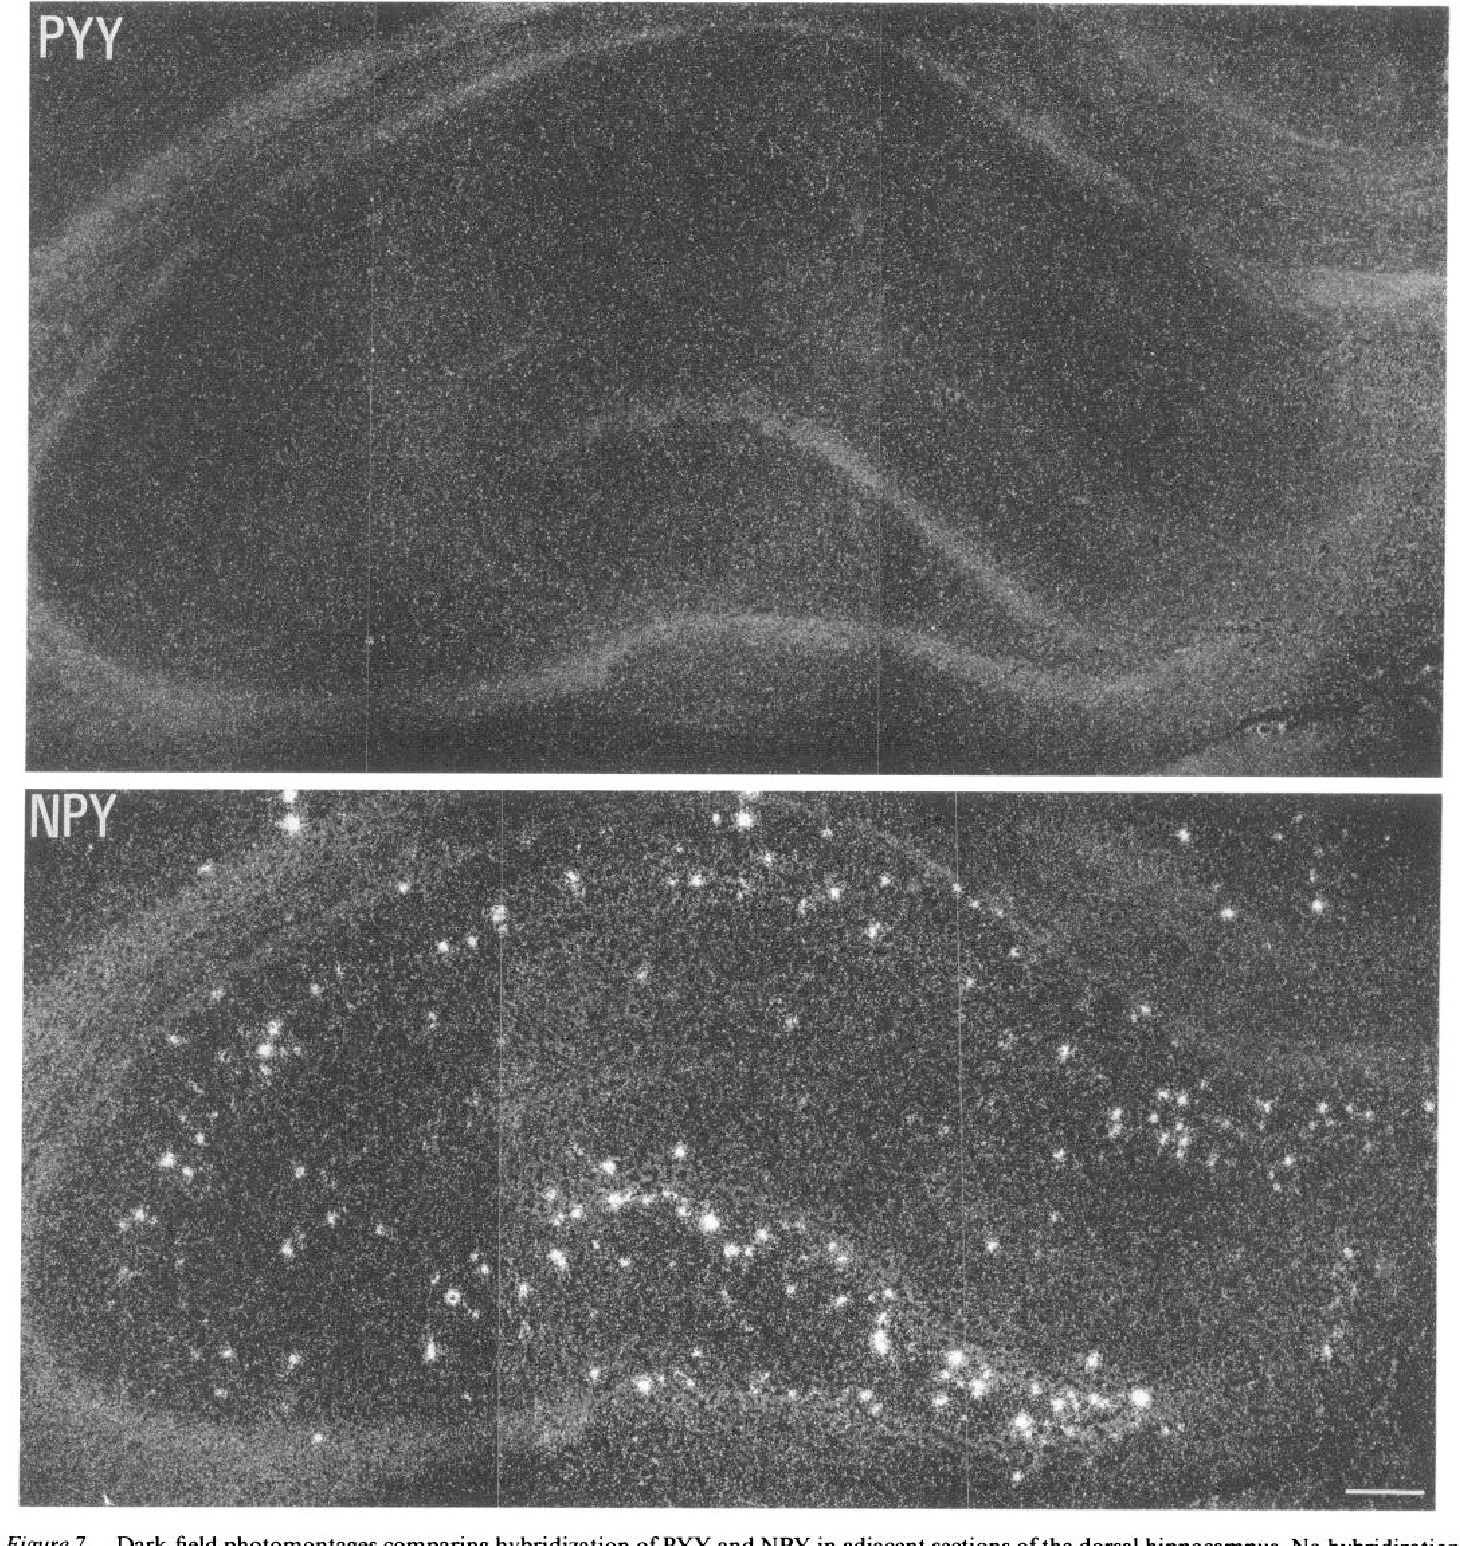 Figure 7. Dark-field photomontages comparing hybridization of PYY and NPY in adjacent sections of the dorsal hippocampus. No hybridization is apparent with the PYY probe, but intense labeling can be seen with the NPY probe, particularly in the dentate gyrus. Scale bar, 100 pm.